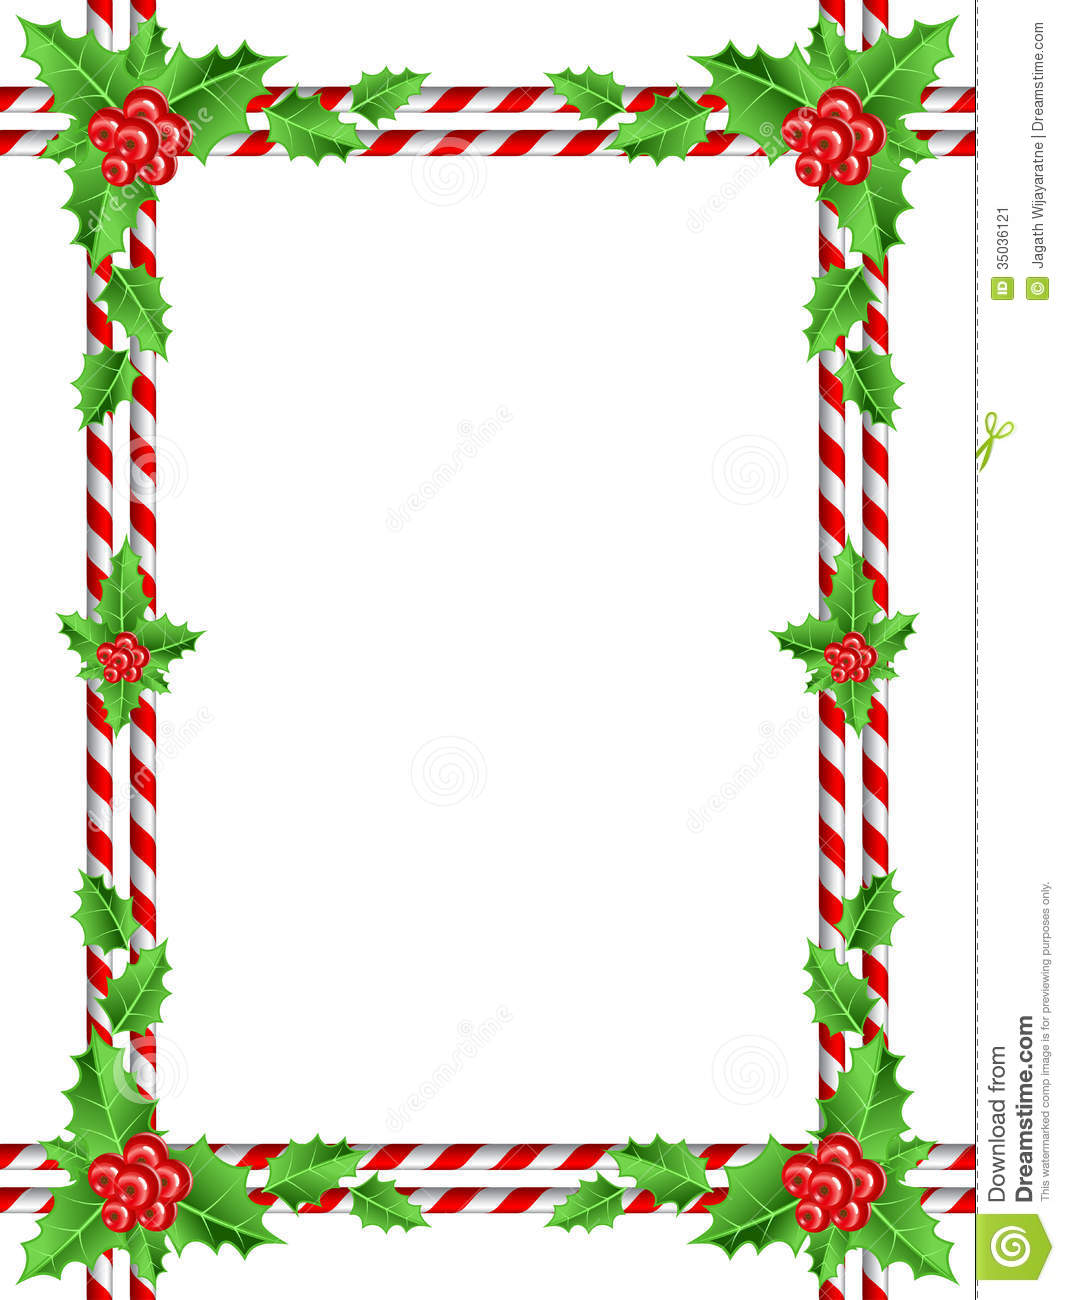 Red Berries Christmas Border Stock Vector